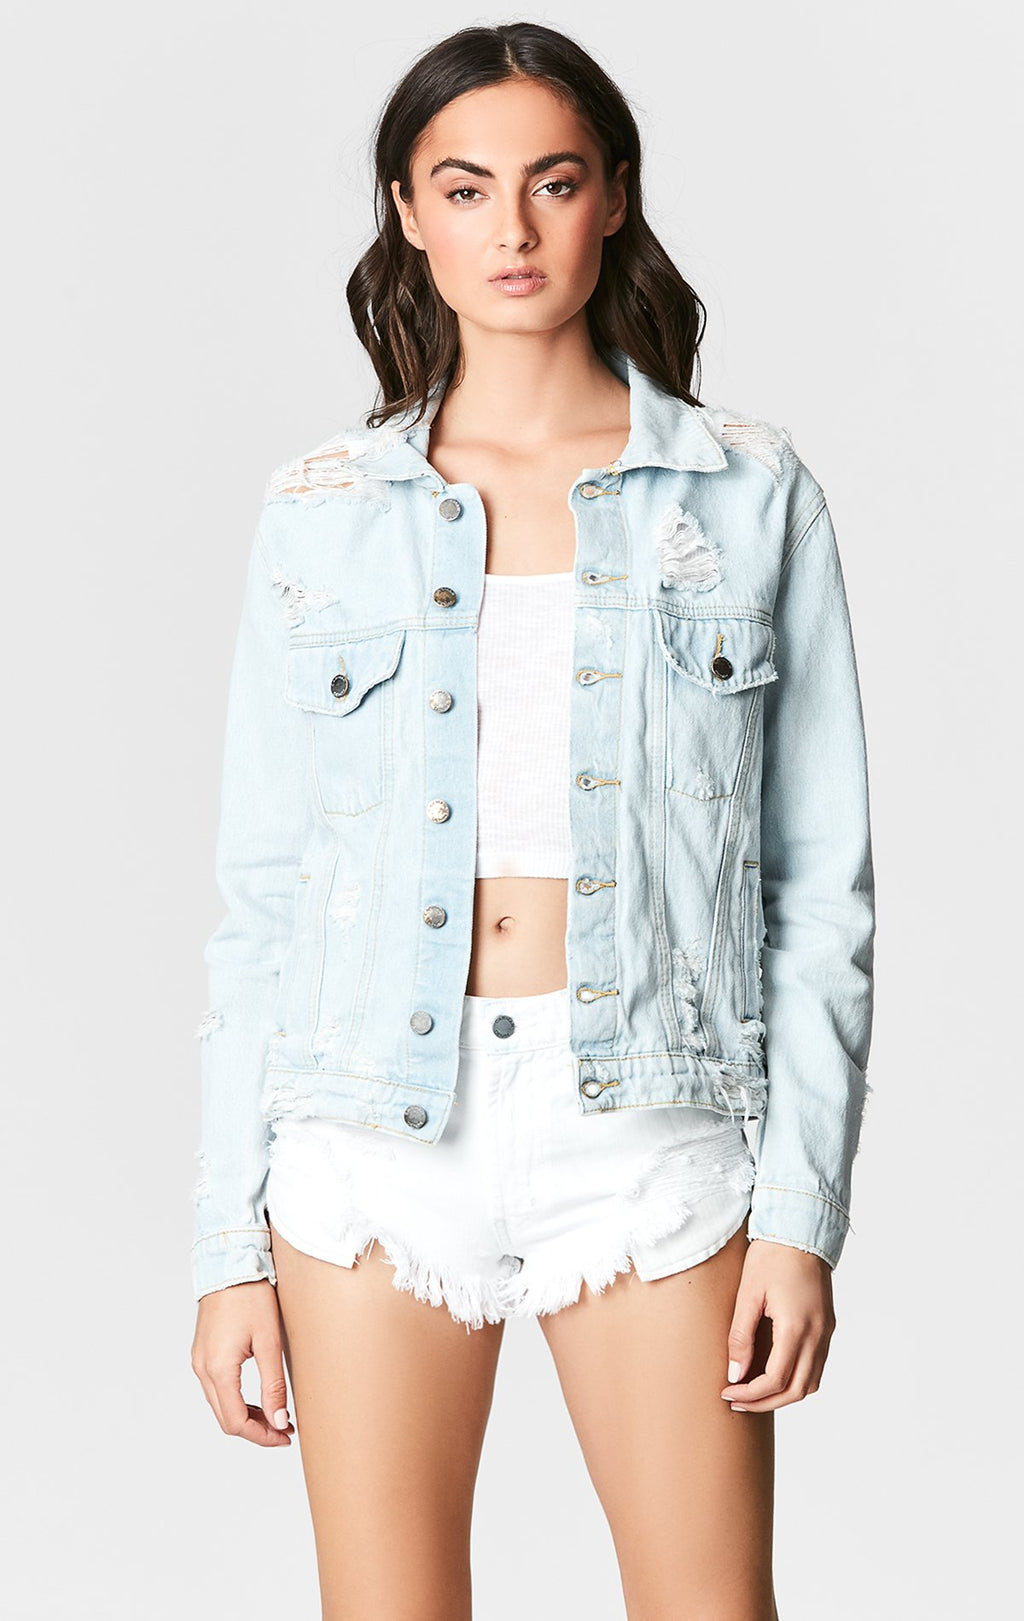 CARMARDENIM ESTRELLA OTHELLO SHREDDED DENIM JACKET FRONT